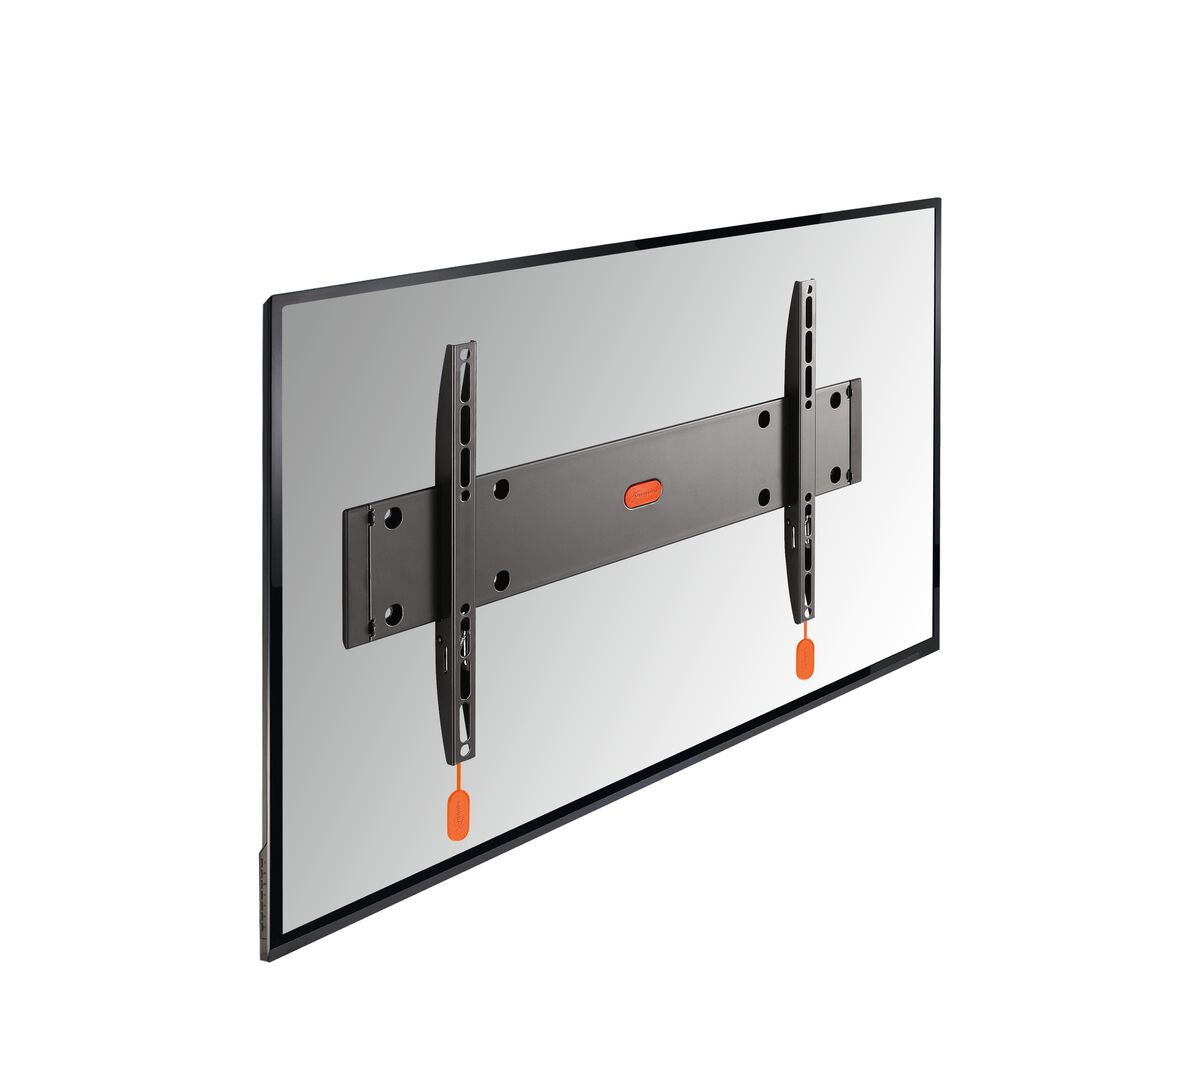 Vogel's BASE 05 M Fixed TV Wall Mount - Suitable for 32 up to 55 inch TVs up to 30 kg - Product